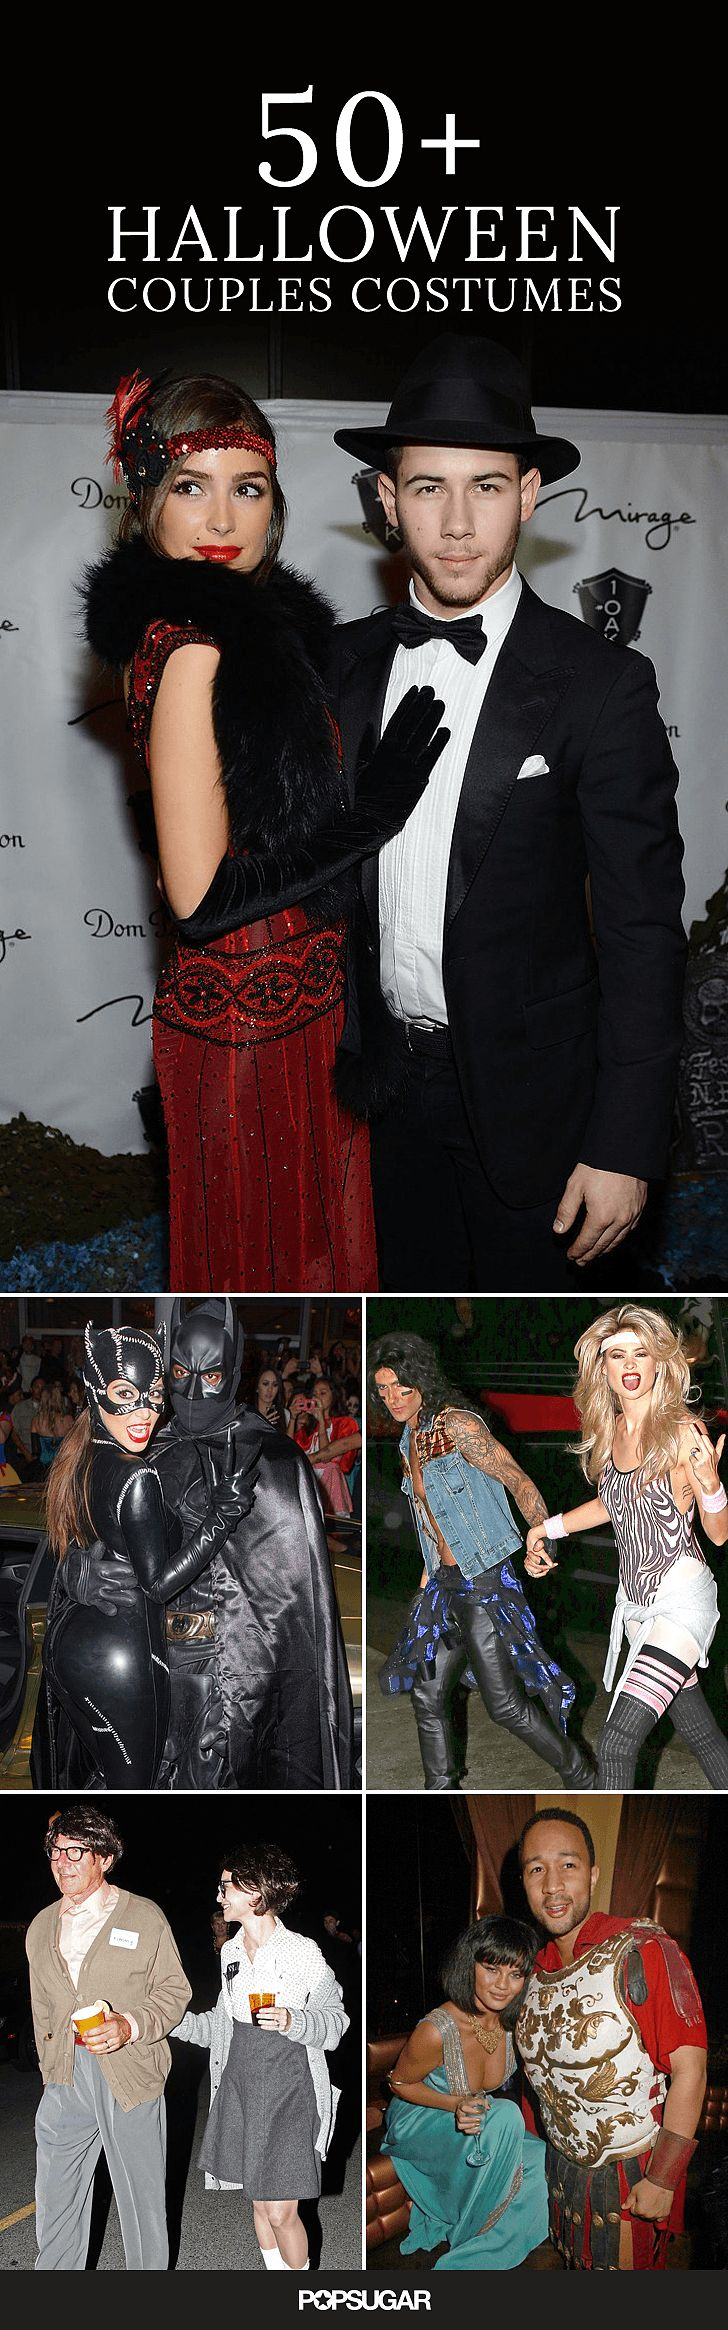 55 celebrity couples halloween costumes - Halloween Costumes That Make You Look Skinny